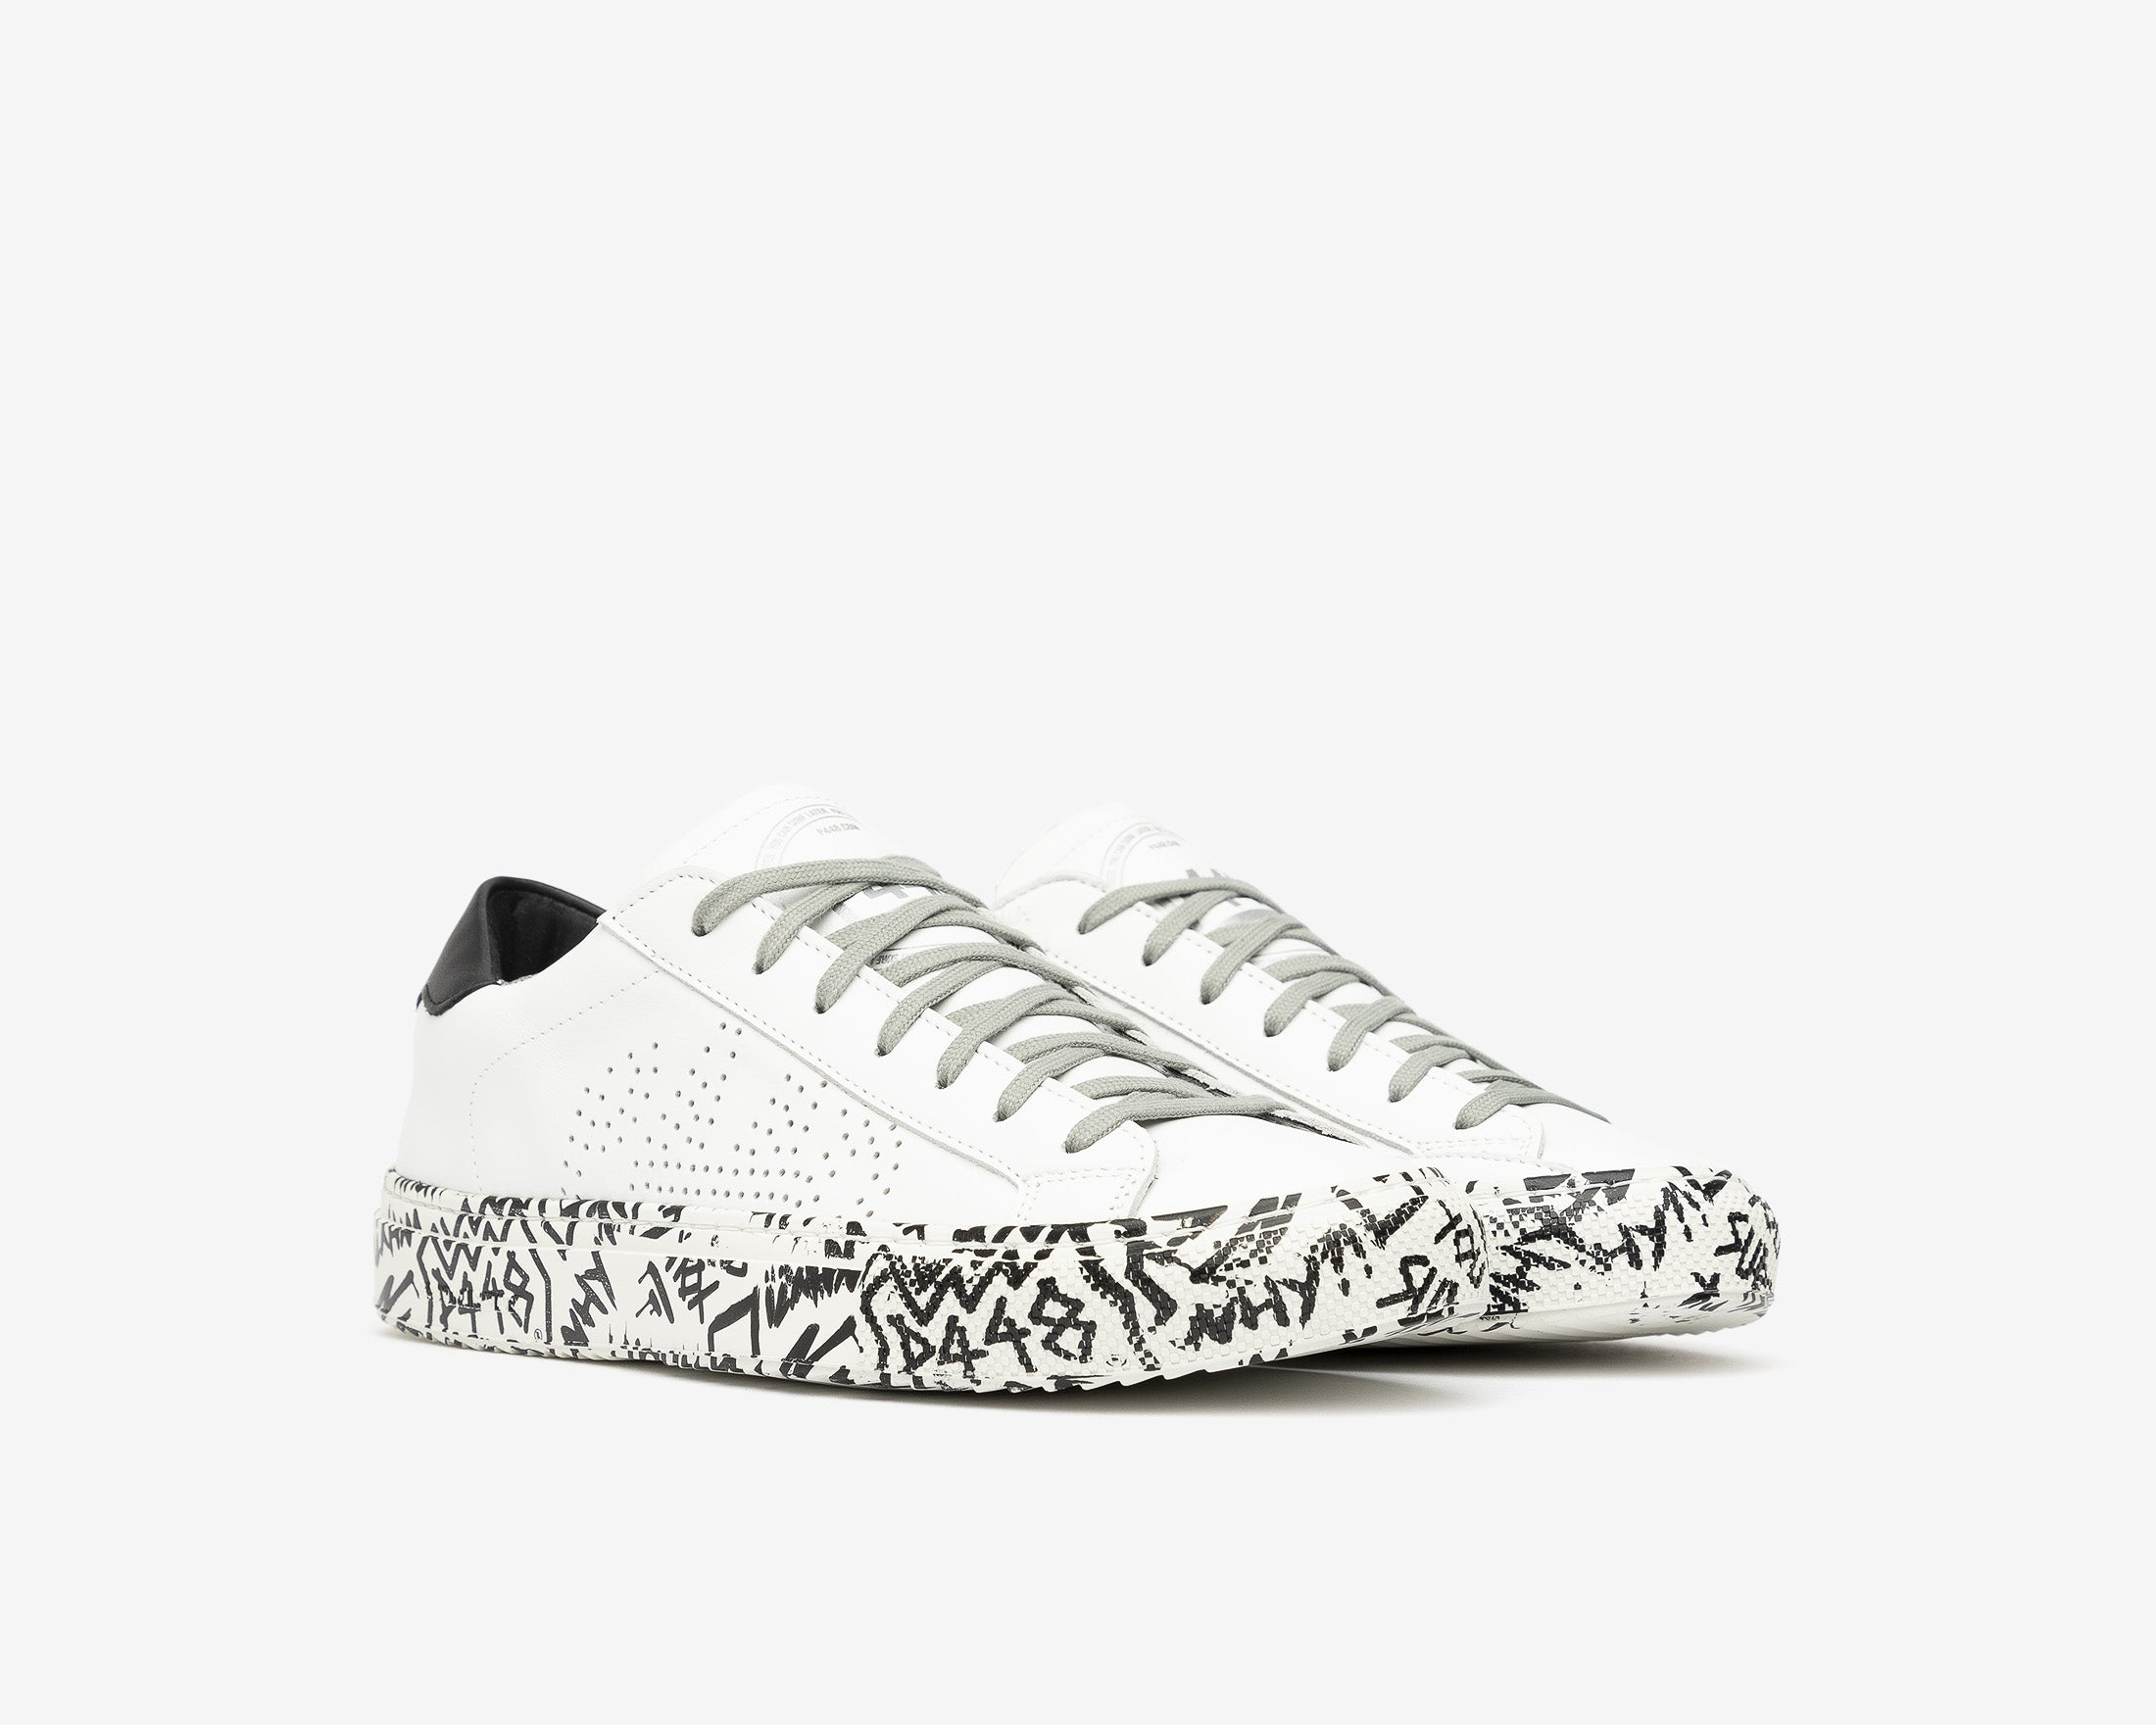 JohnP Low-Top Sneaker in White/P448 Sole - Side